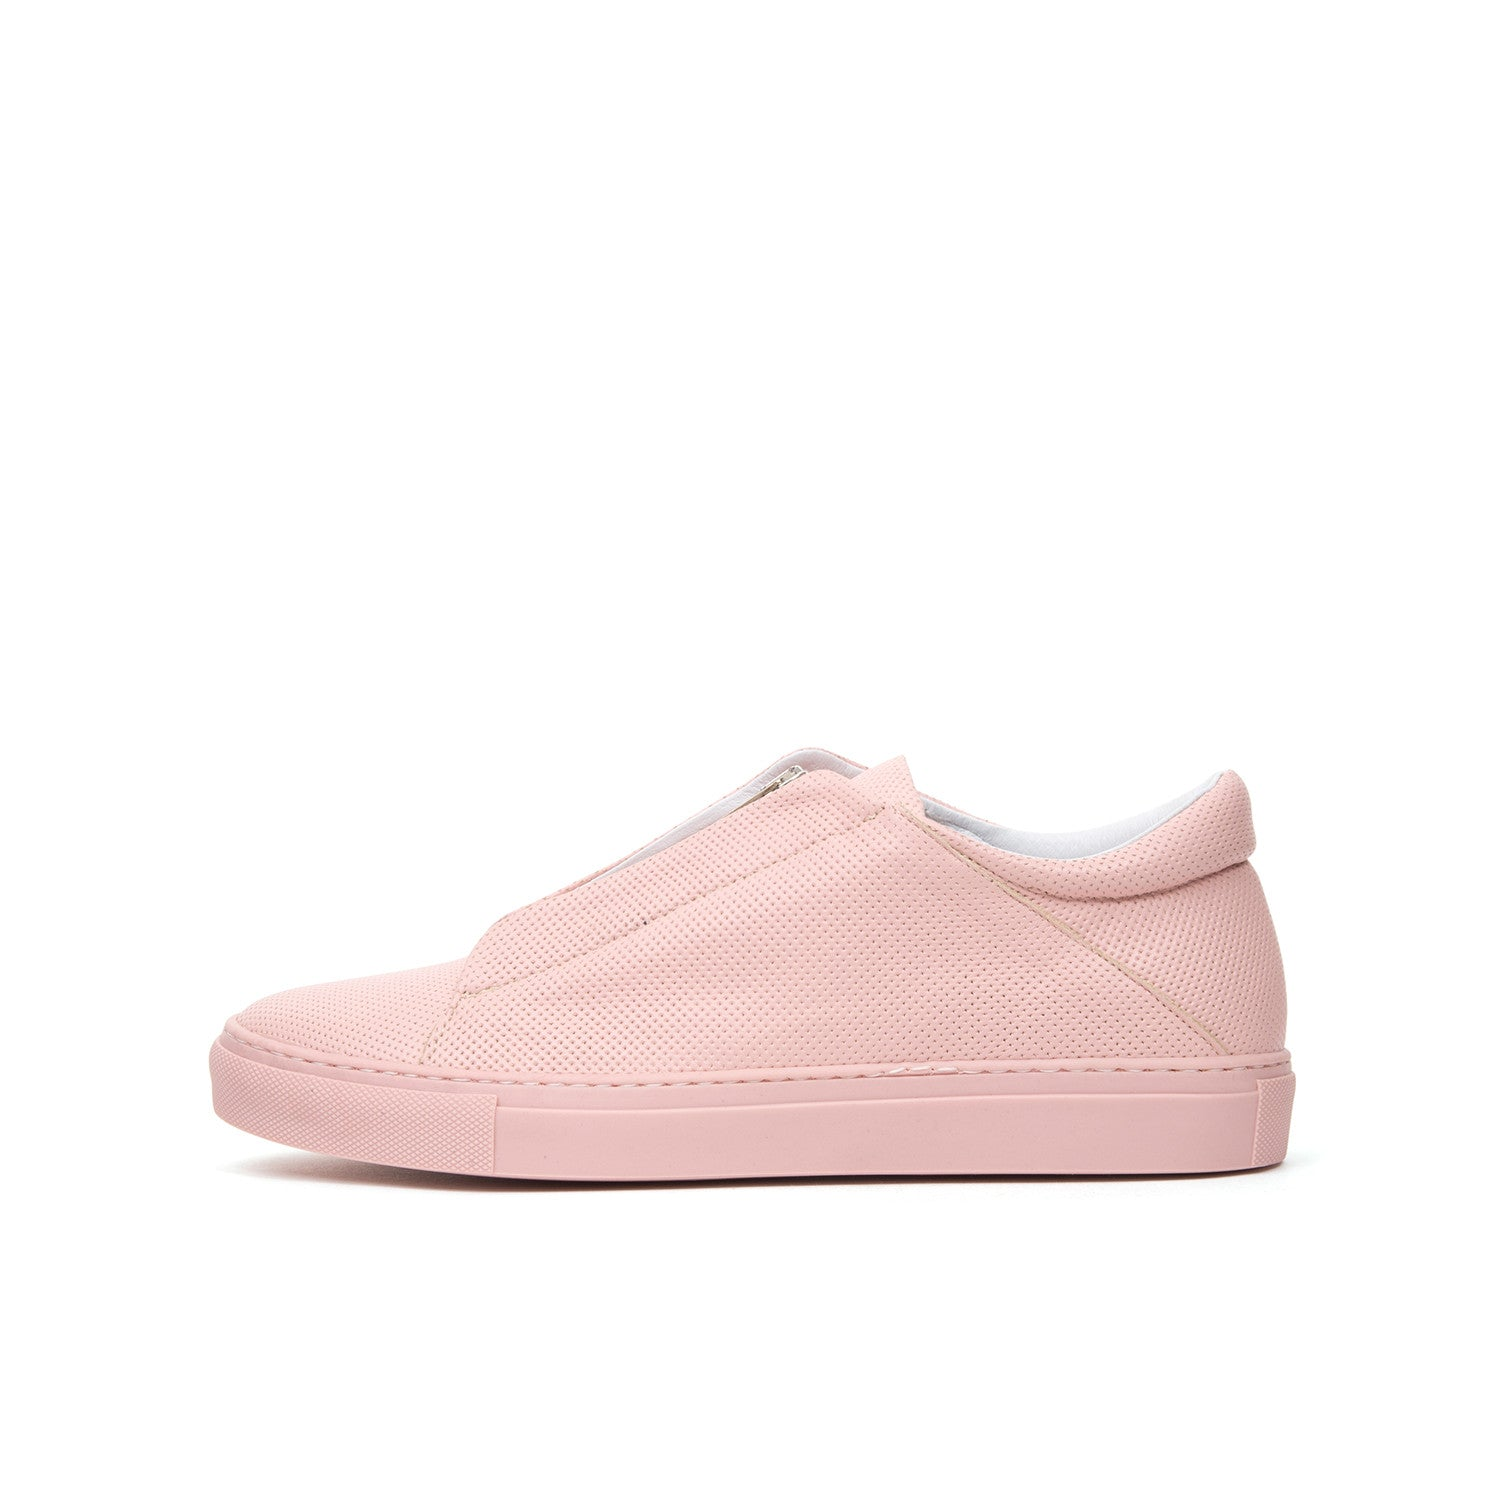 Ylati Nerone Low Pink Leather